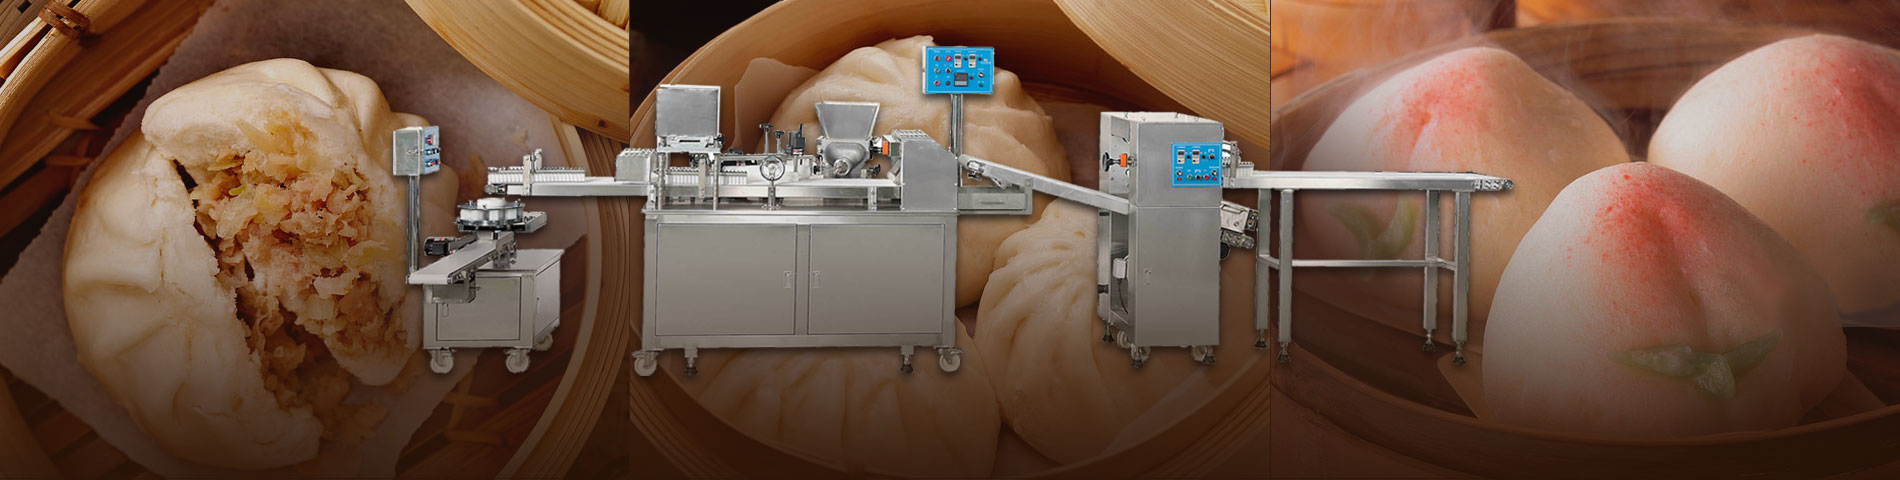 Steamed Bun TY-810S bun machine